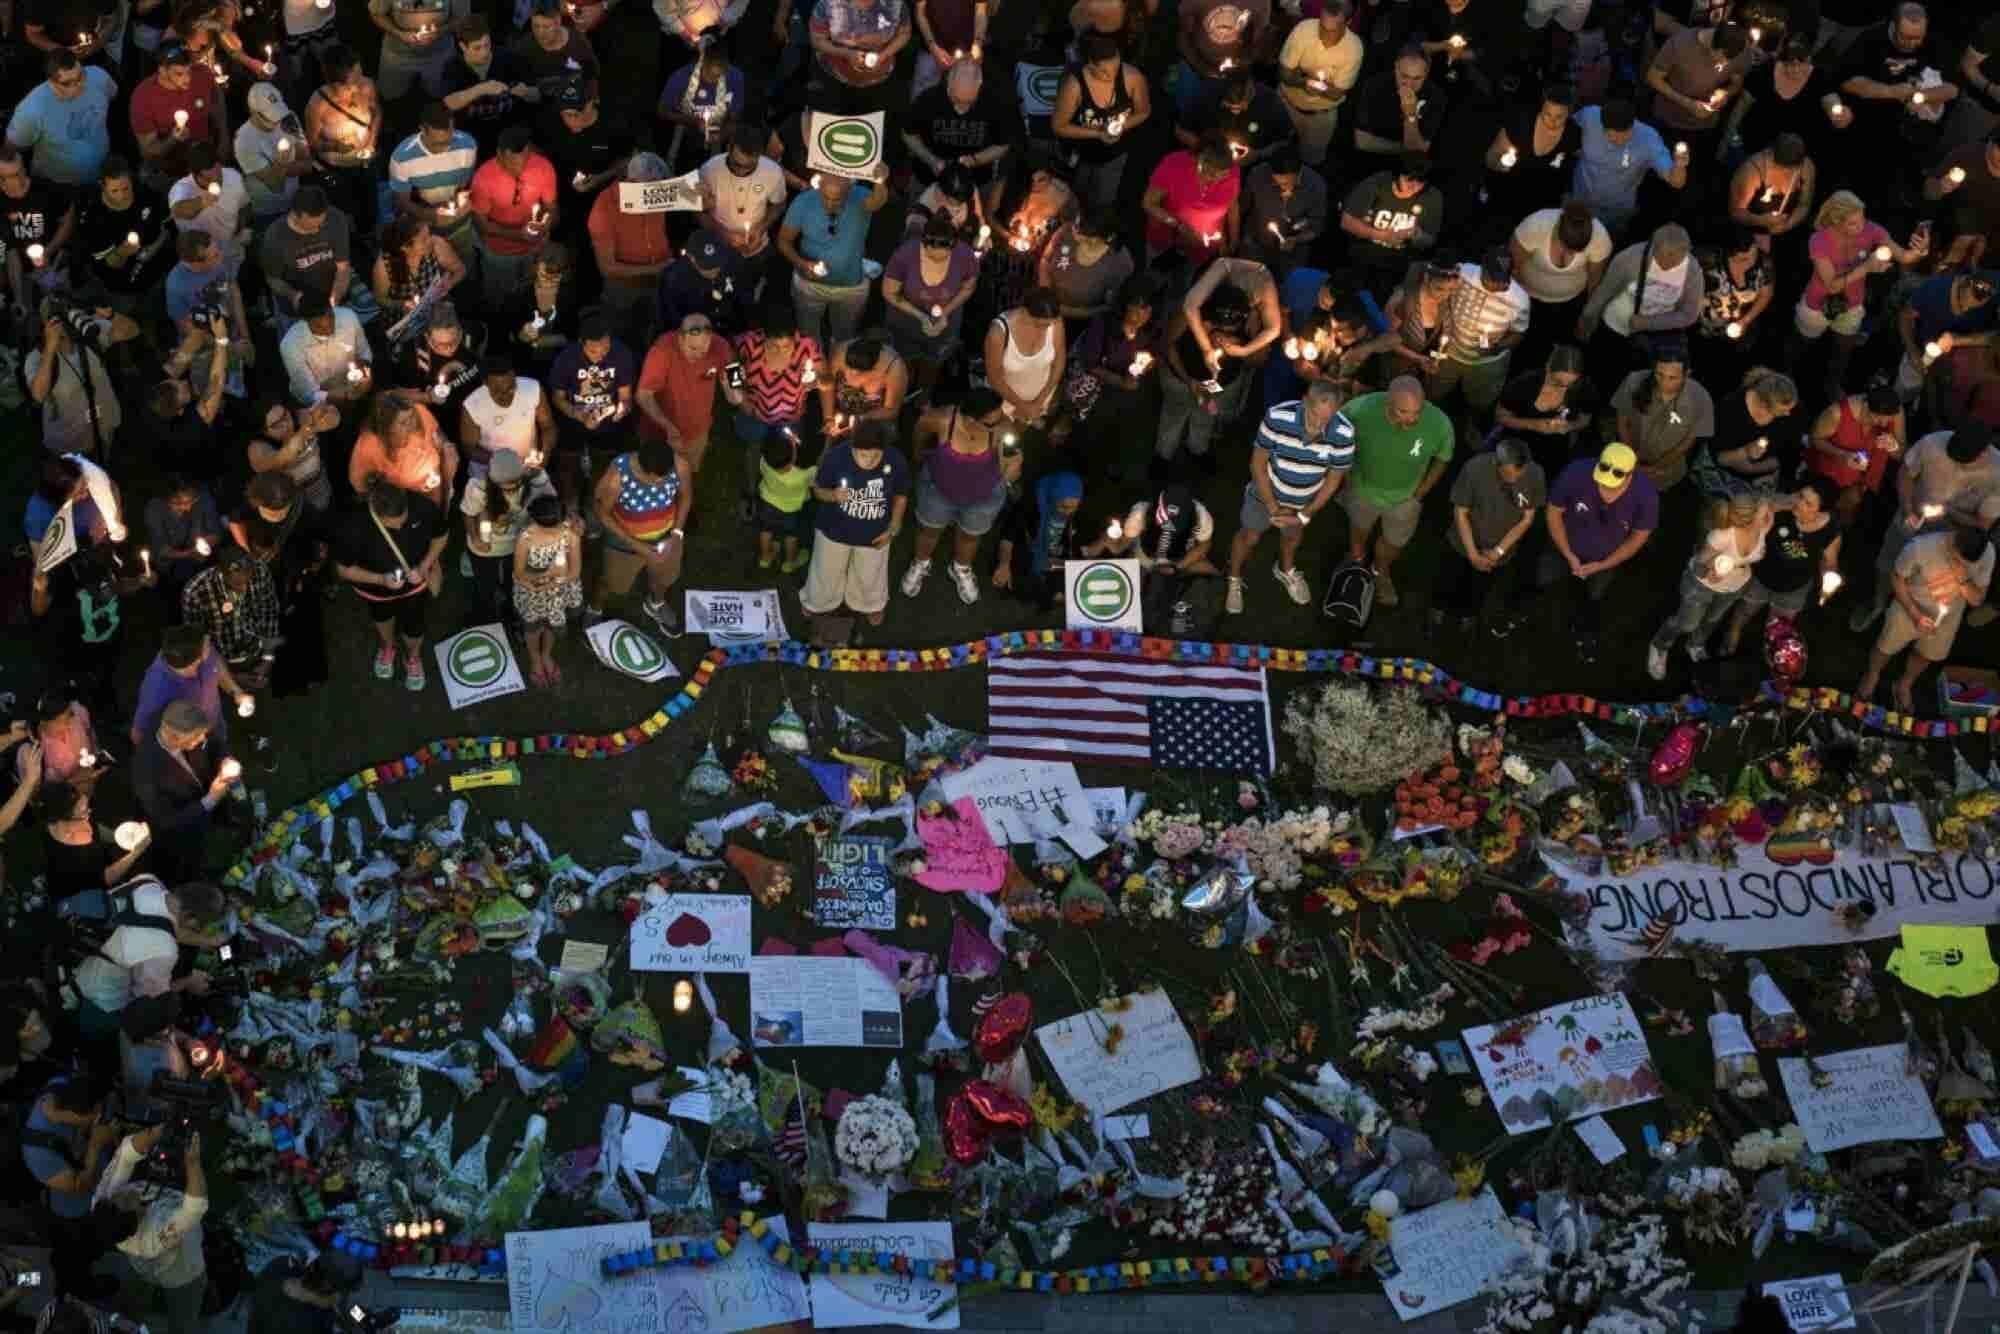 More Than $3 Million Raised on GoFundMe for Victims of Orlando Shooting in Largest Crowdfunding Campaign in Platform's History